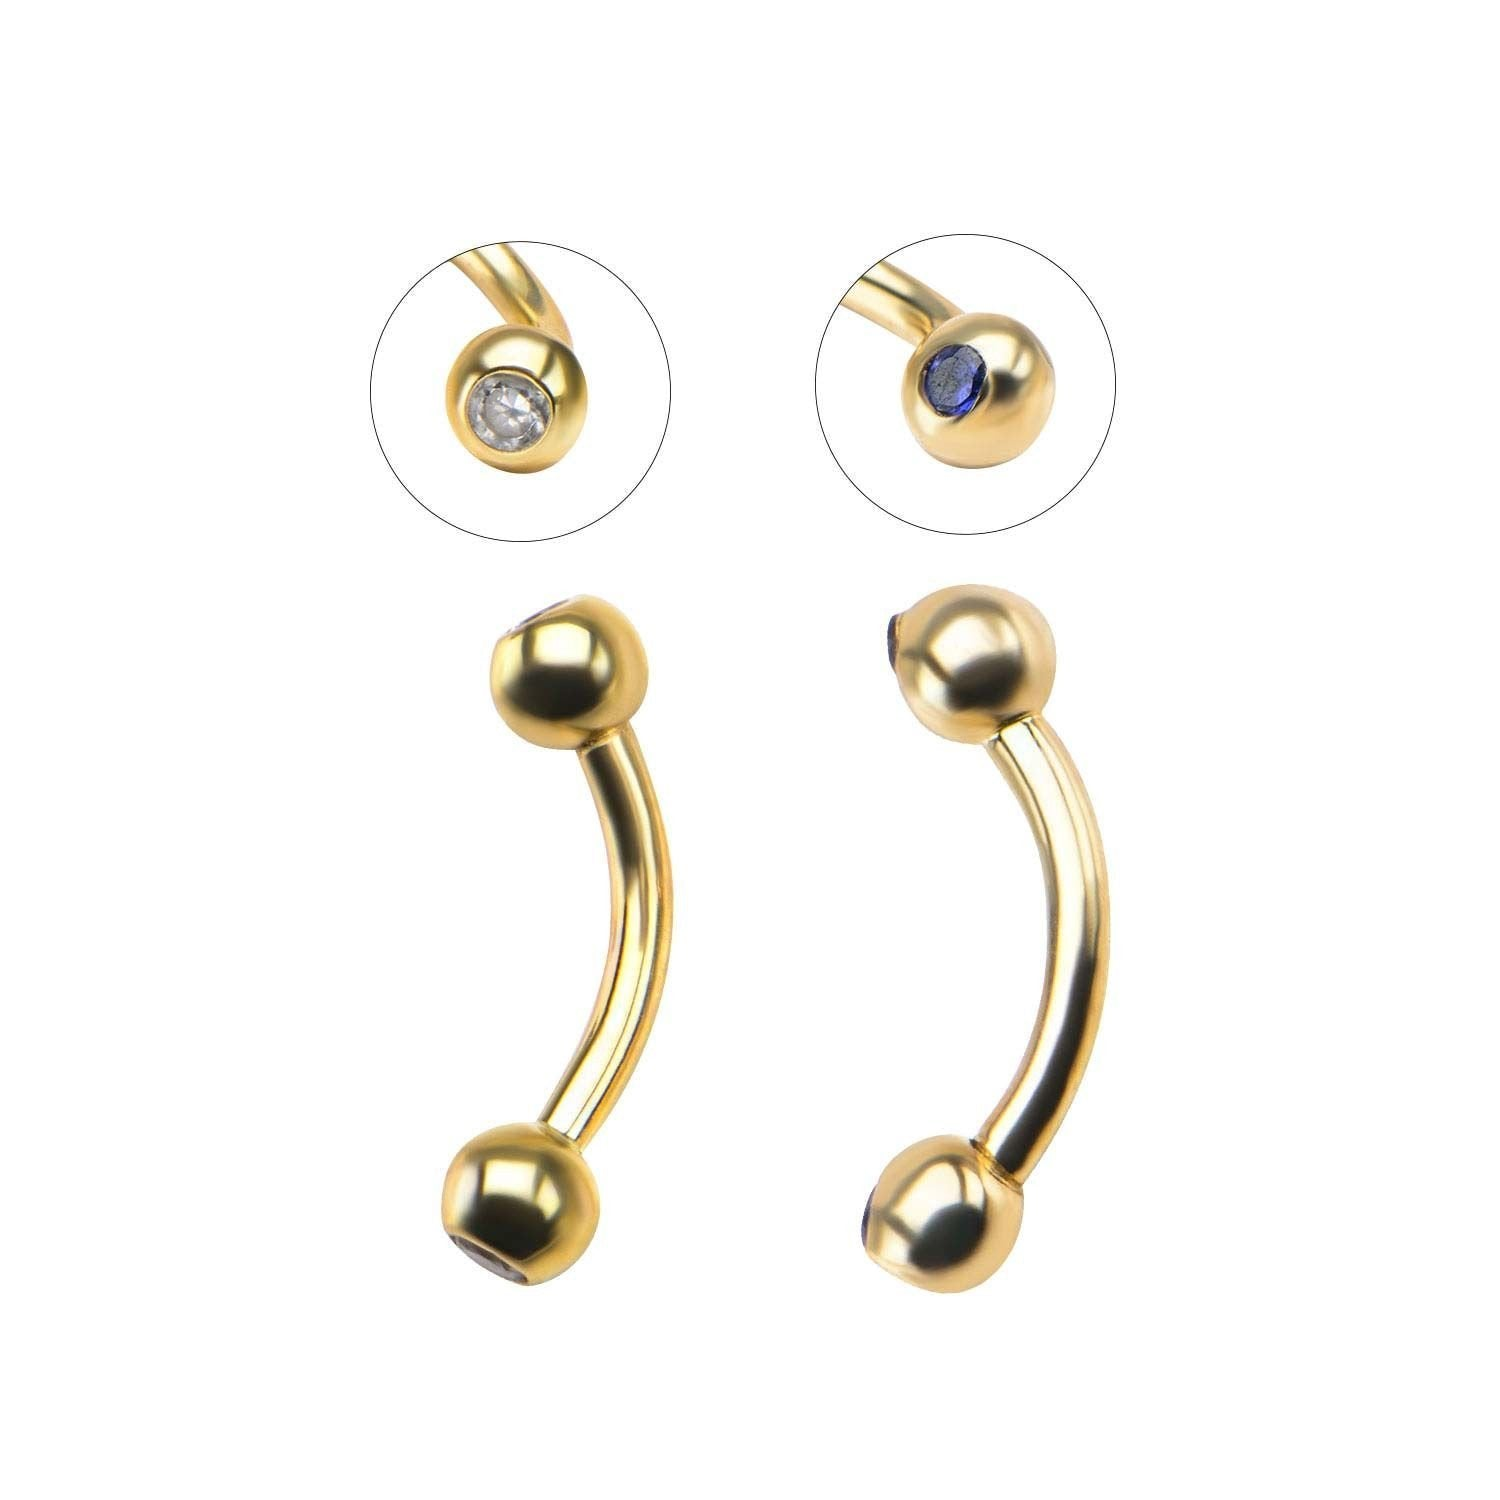 14K Solid GOLD Gem Ball CURVED BENT Barbell Eyebrow Ear Rook RINGS Stud Piercing